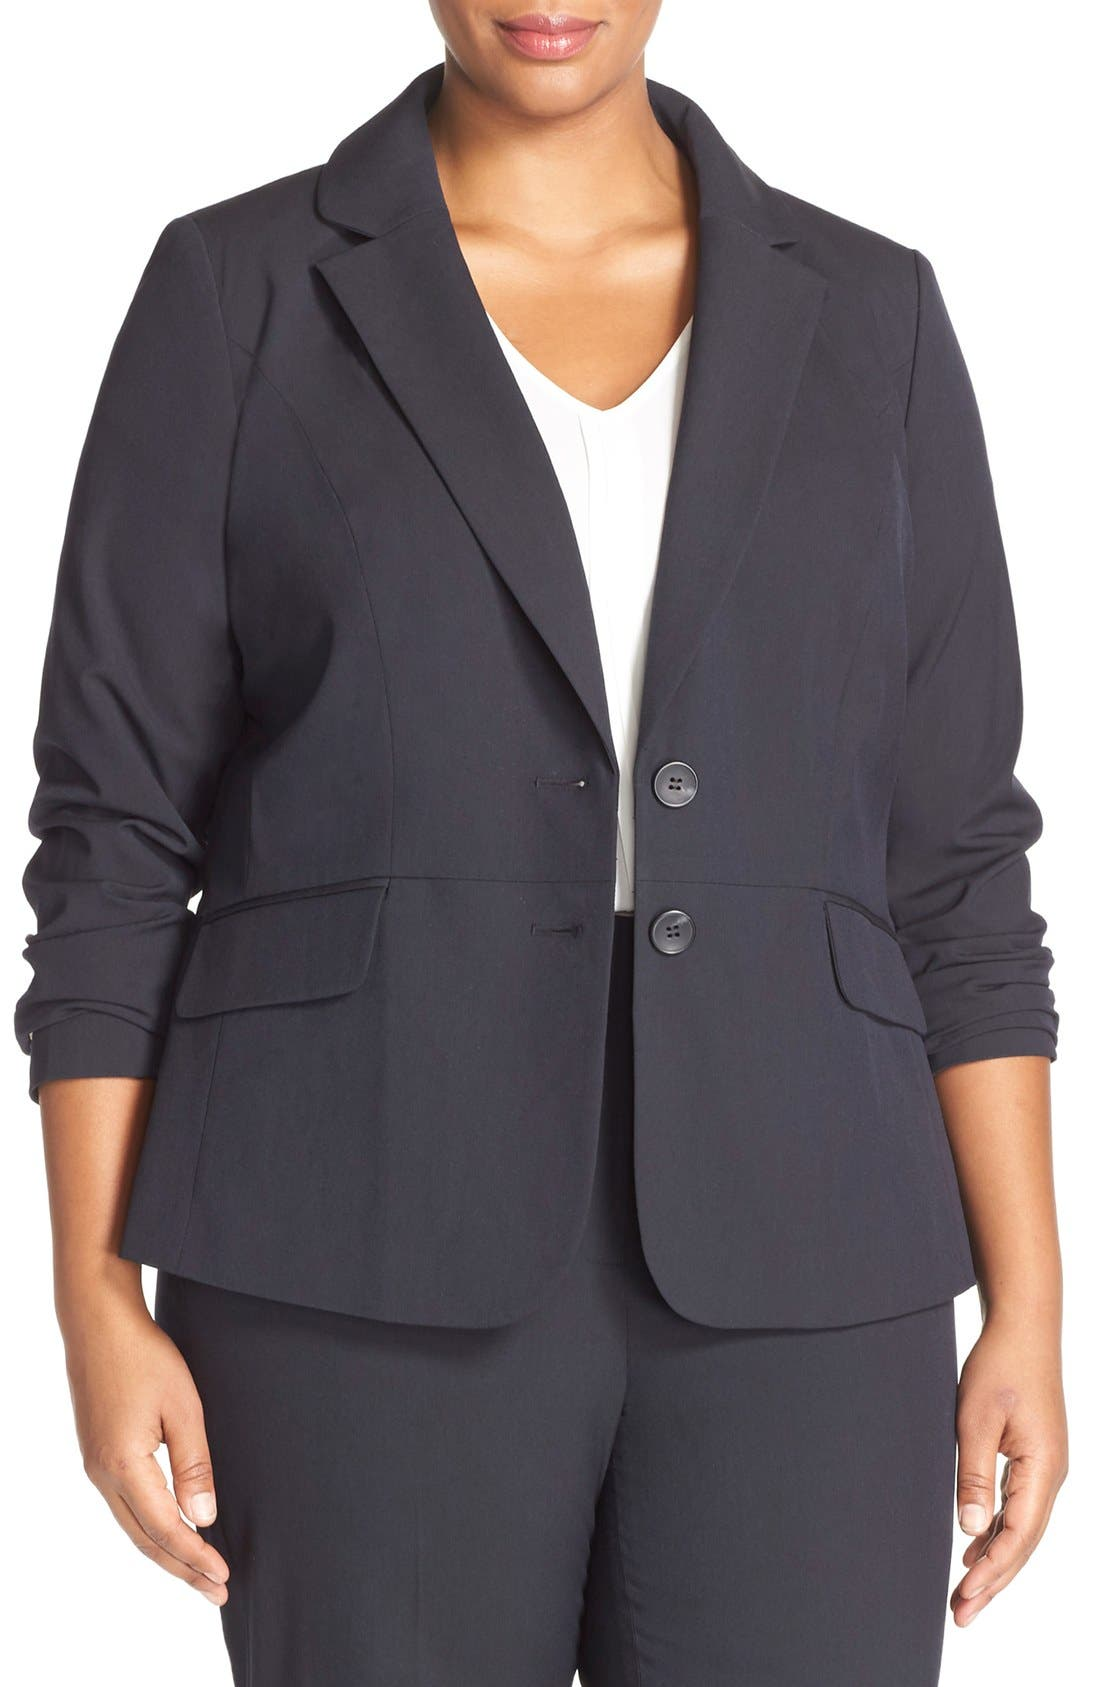 Alternate Image 1 Selected - Sejour 'Ela Two-Button Stretch Suit Jacket (Plus Size & Petite Plus)